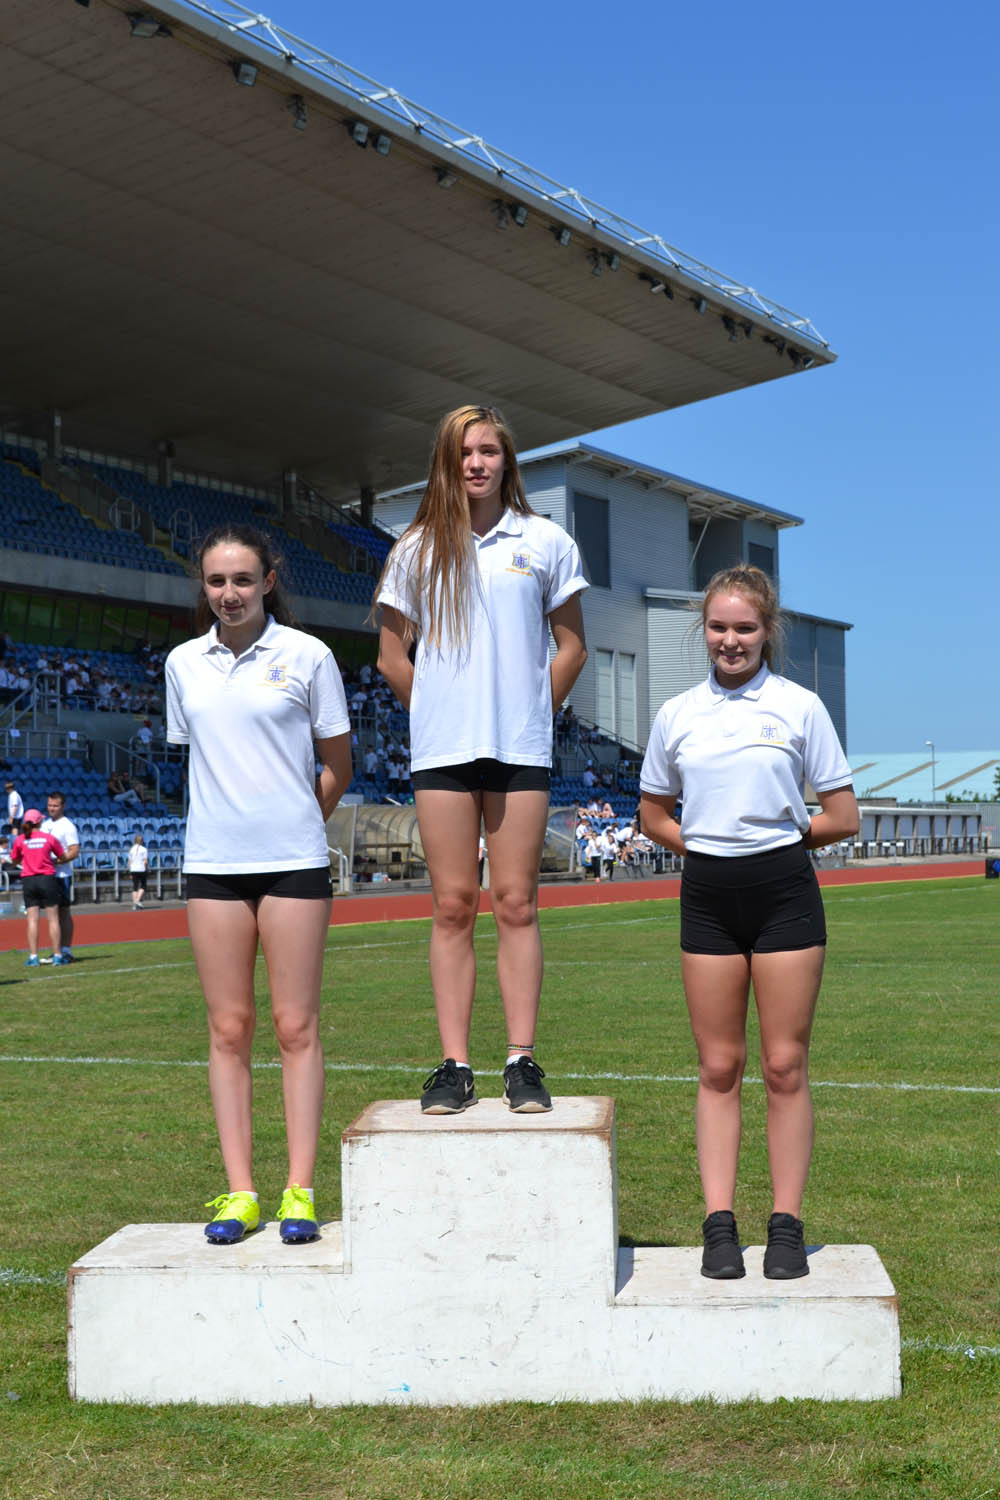 Year 9 Girls Long Jump